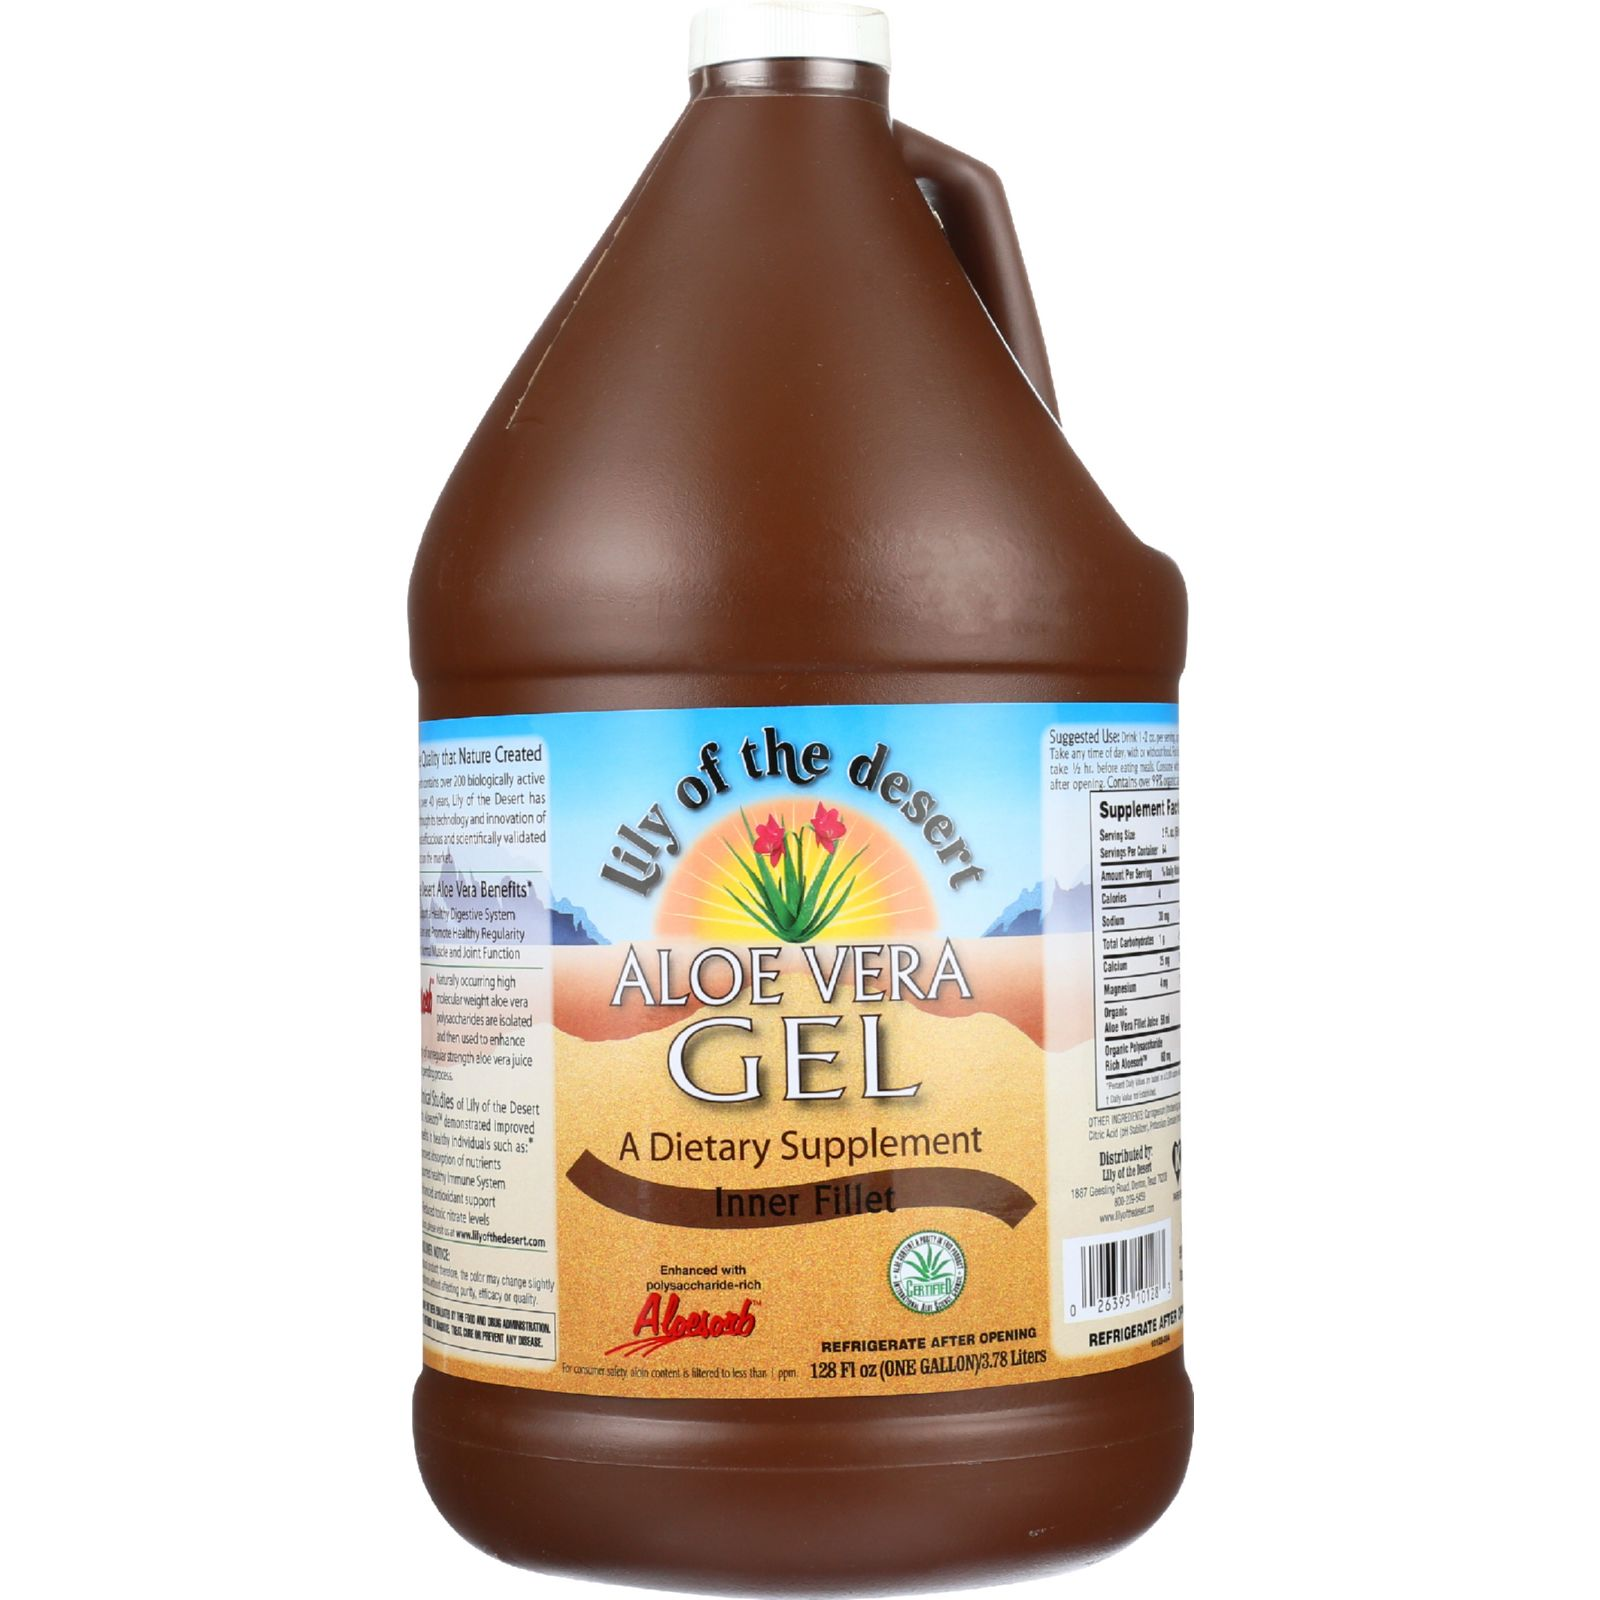 Lily Of The Desert Aloe Vera Gel - 1 gallon - case of 4